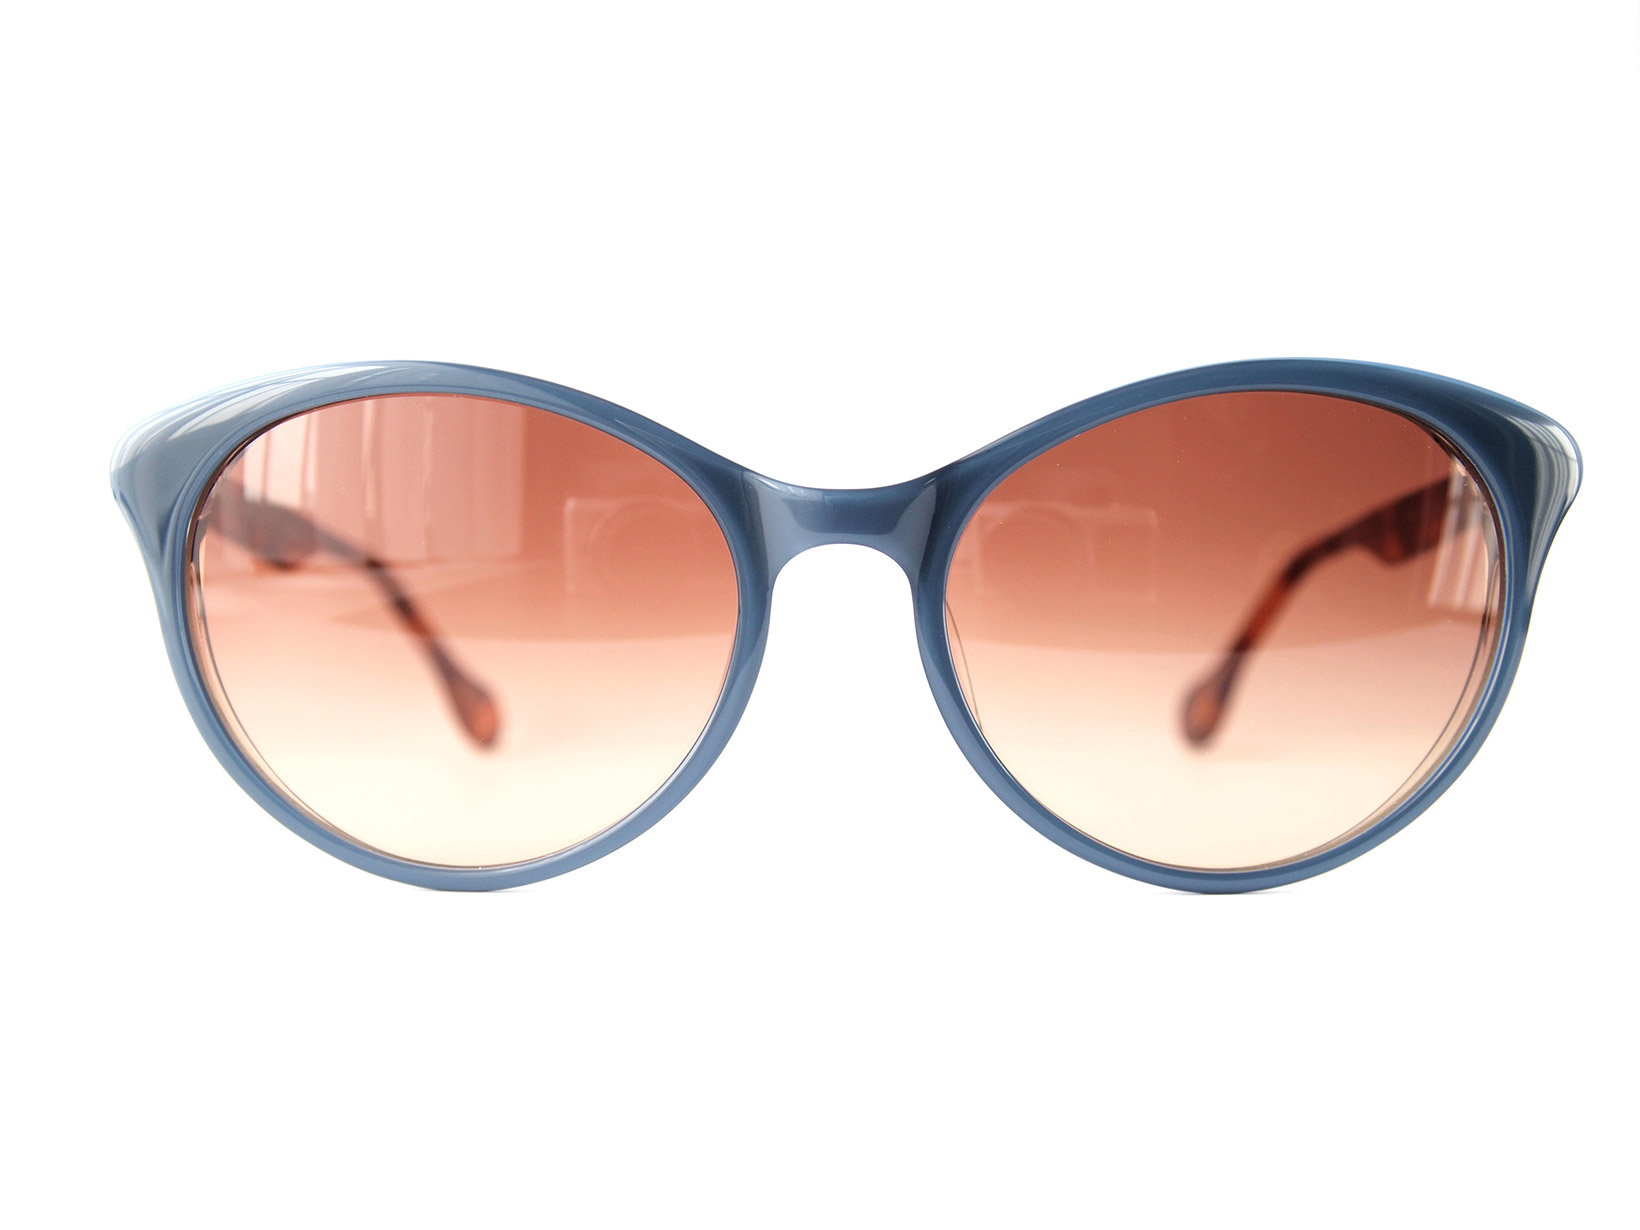 AKITTO 2016-2nd sg1 size:54□18 material: acetate price:29,600-(+tax)